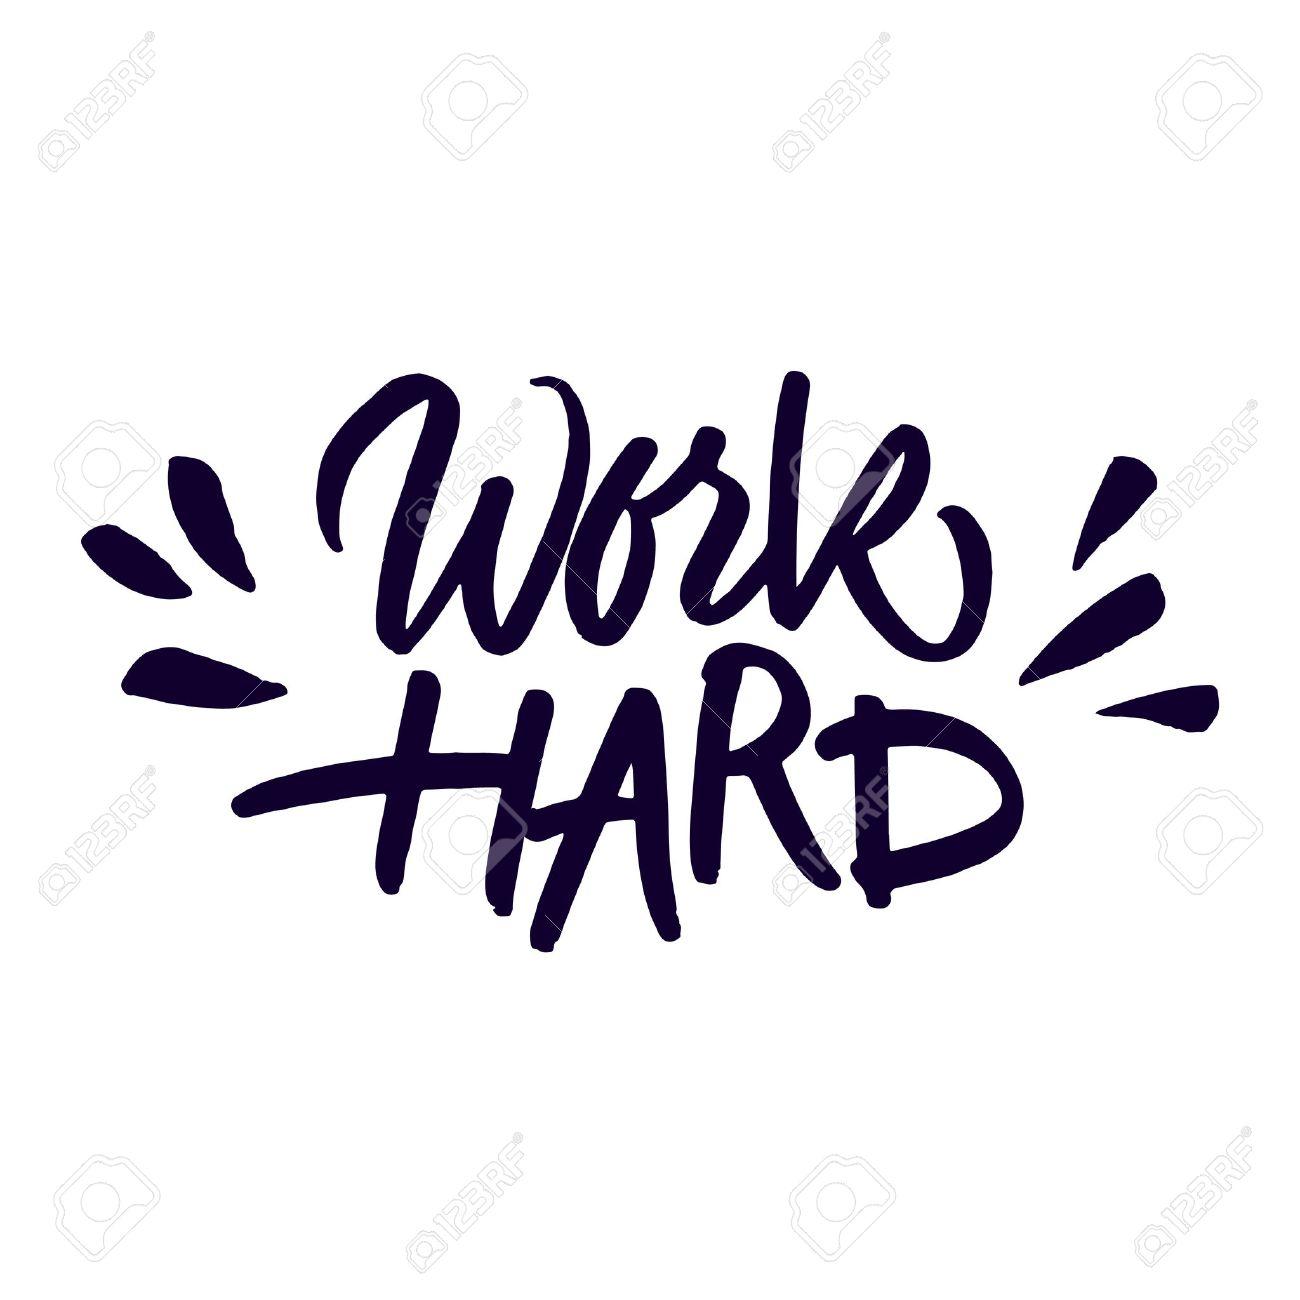 Inspirational Quotes For Work Handwritten Inspirational Quote 'work Hard'expressive Brush